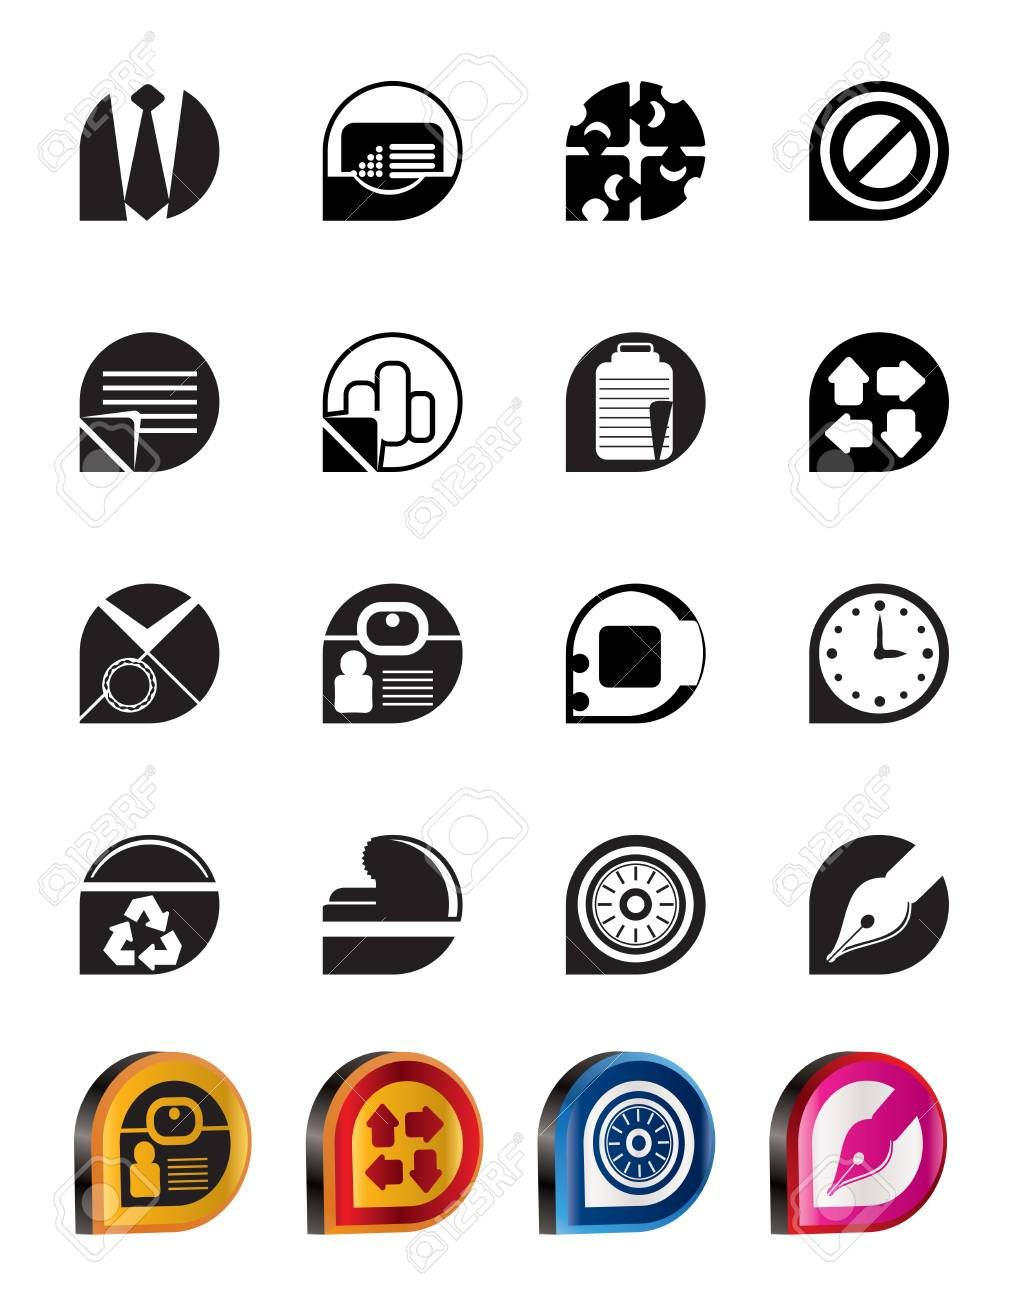 Simple Business and Office Icons - vector icon set Stock Vector - 5377146